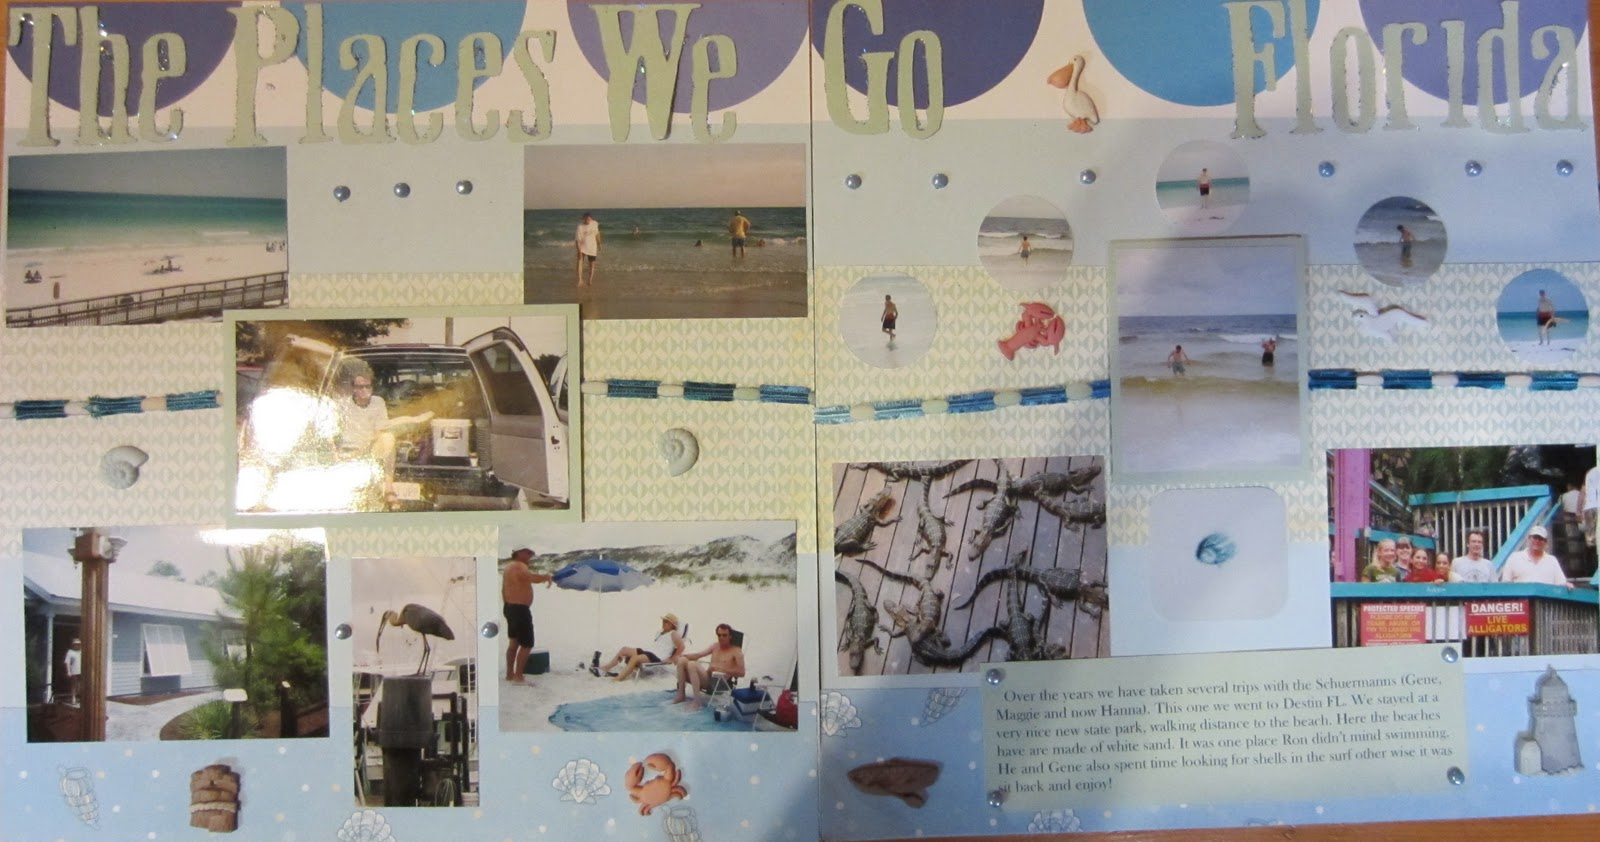 Ziplining scrapbook ideas - This Is A Layout She Did For Her Work Scrapbook She Has A Conference Somewhere In The World Every Year If She Takes The Book To Work She Just Might